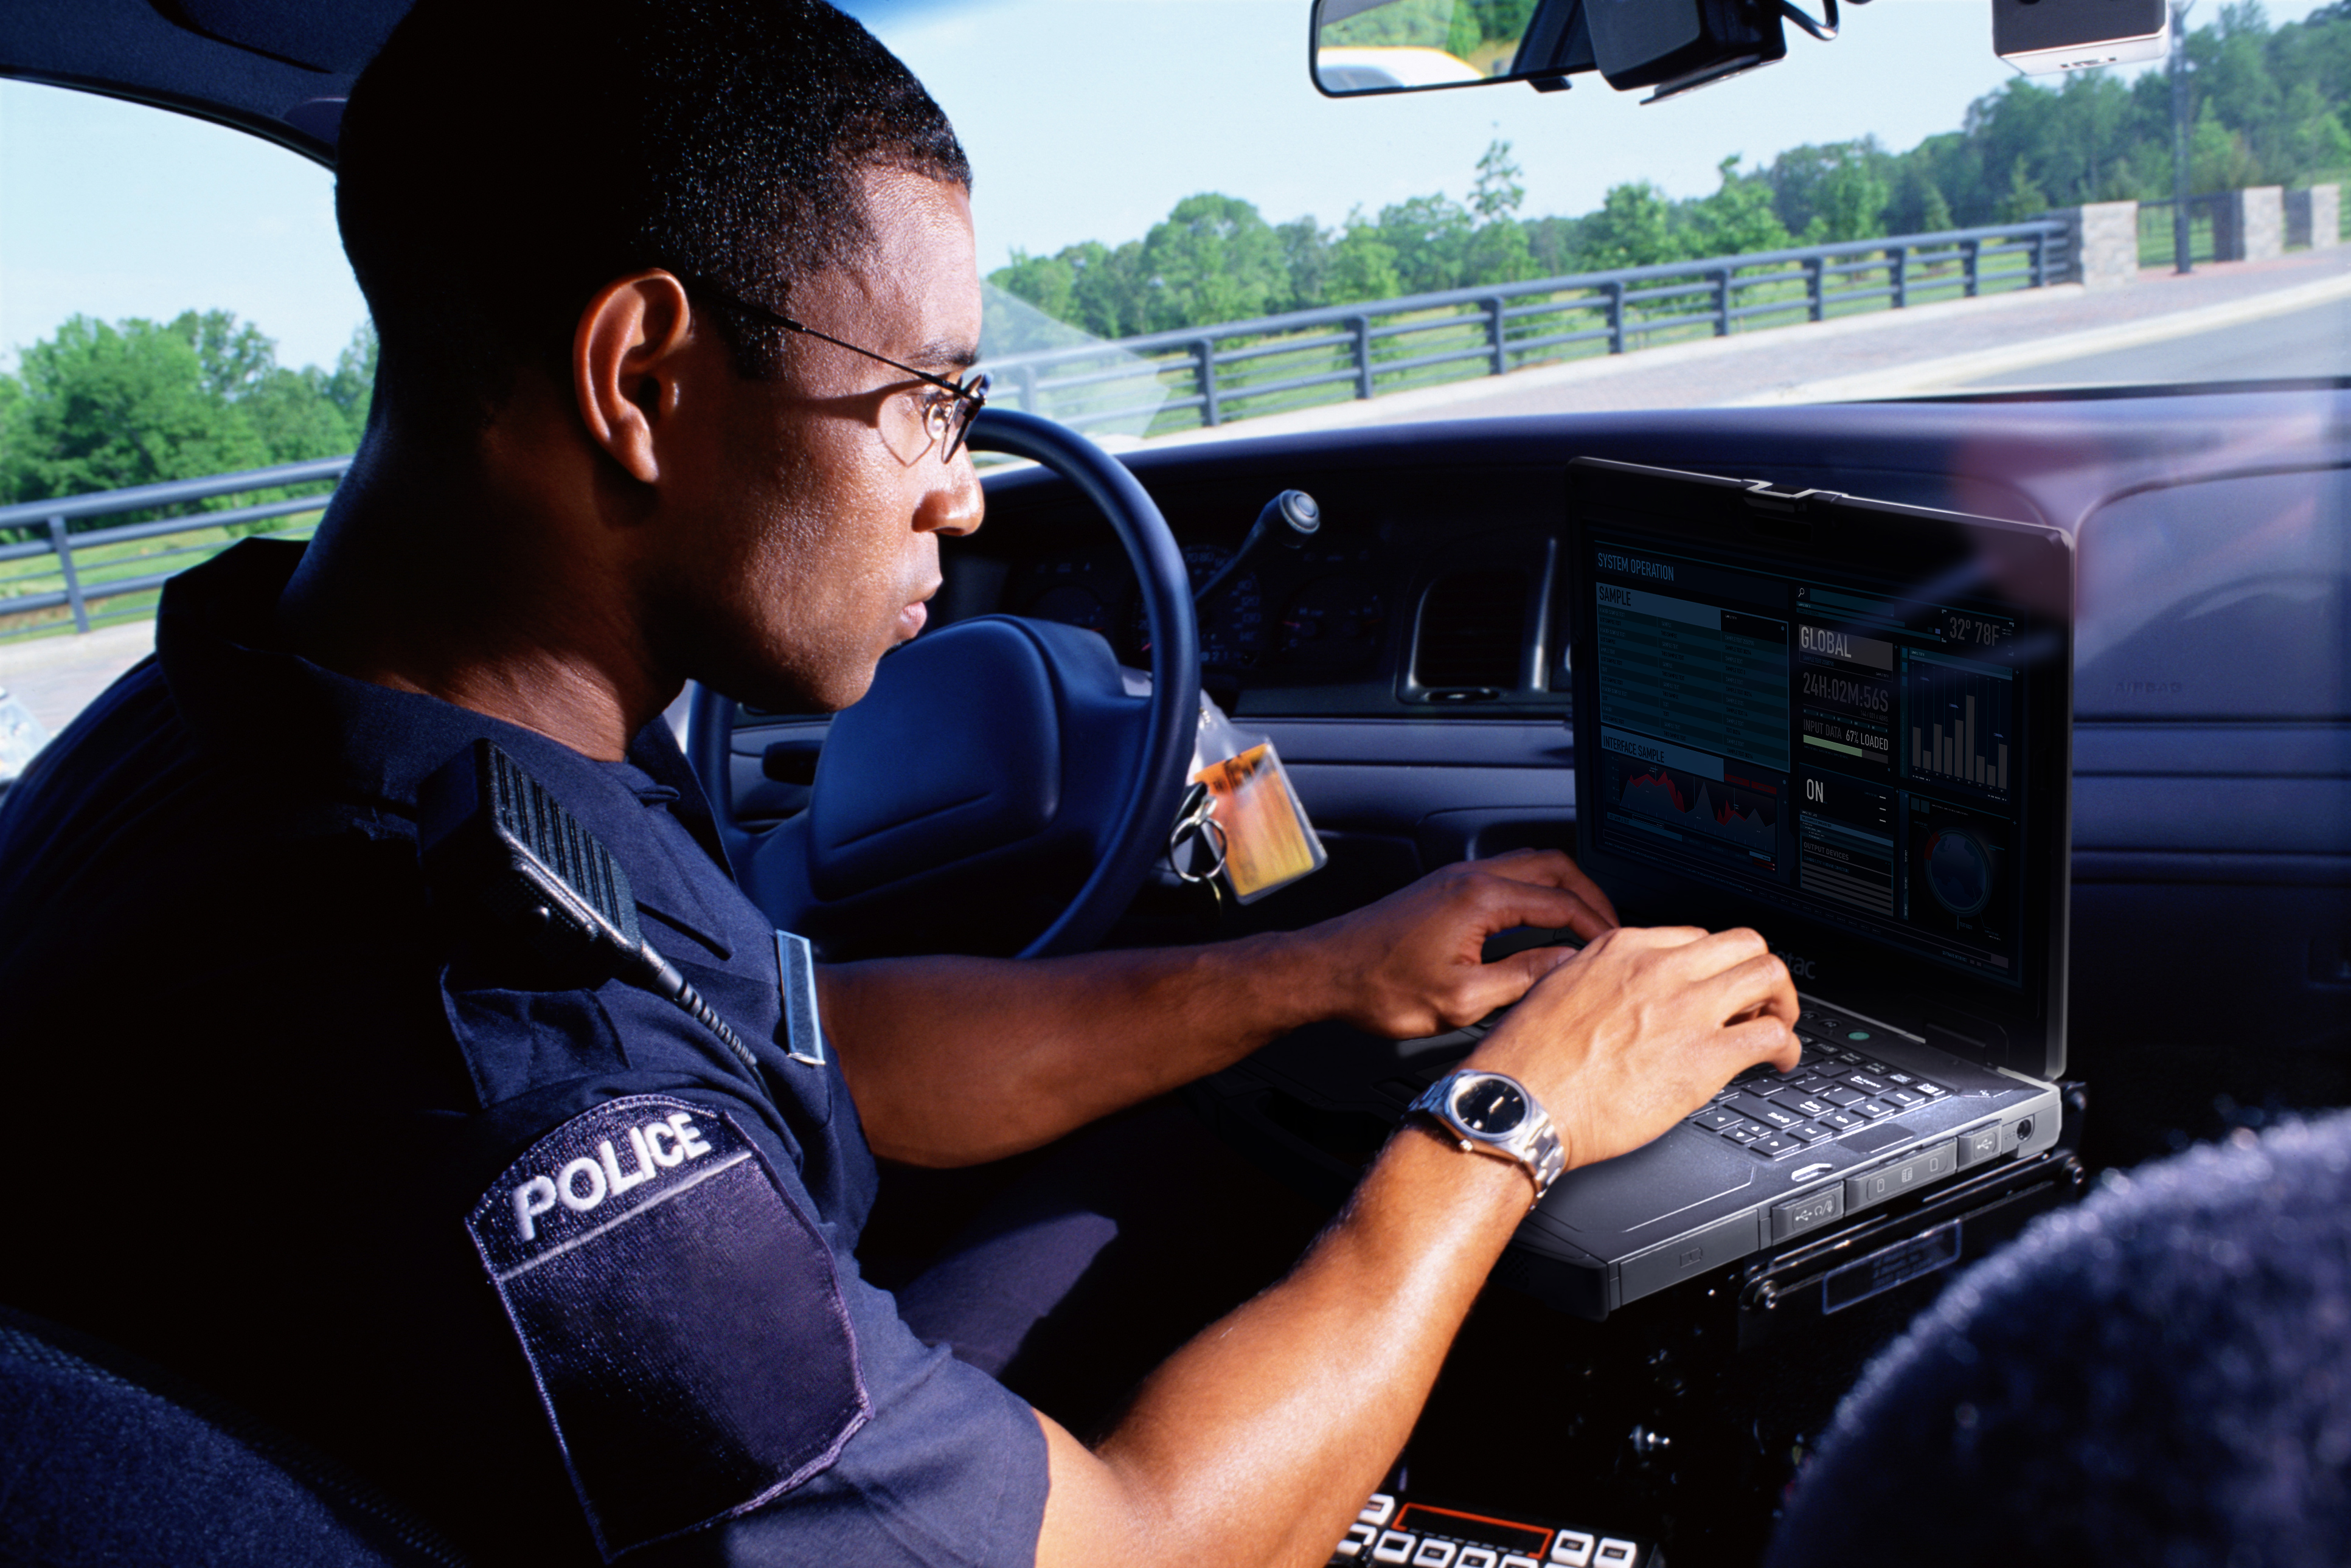 Getac S410 public safety sector